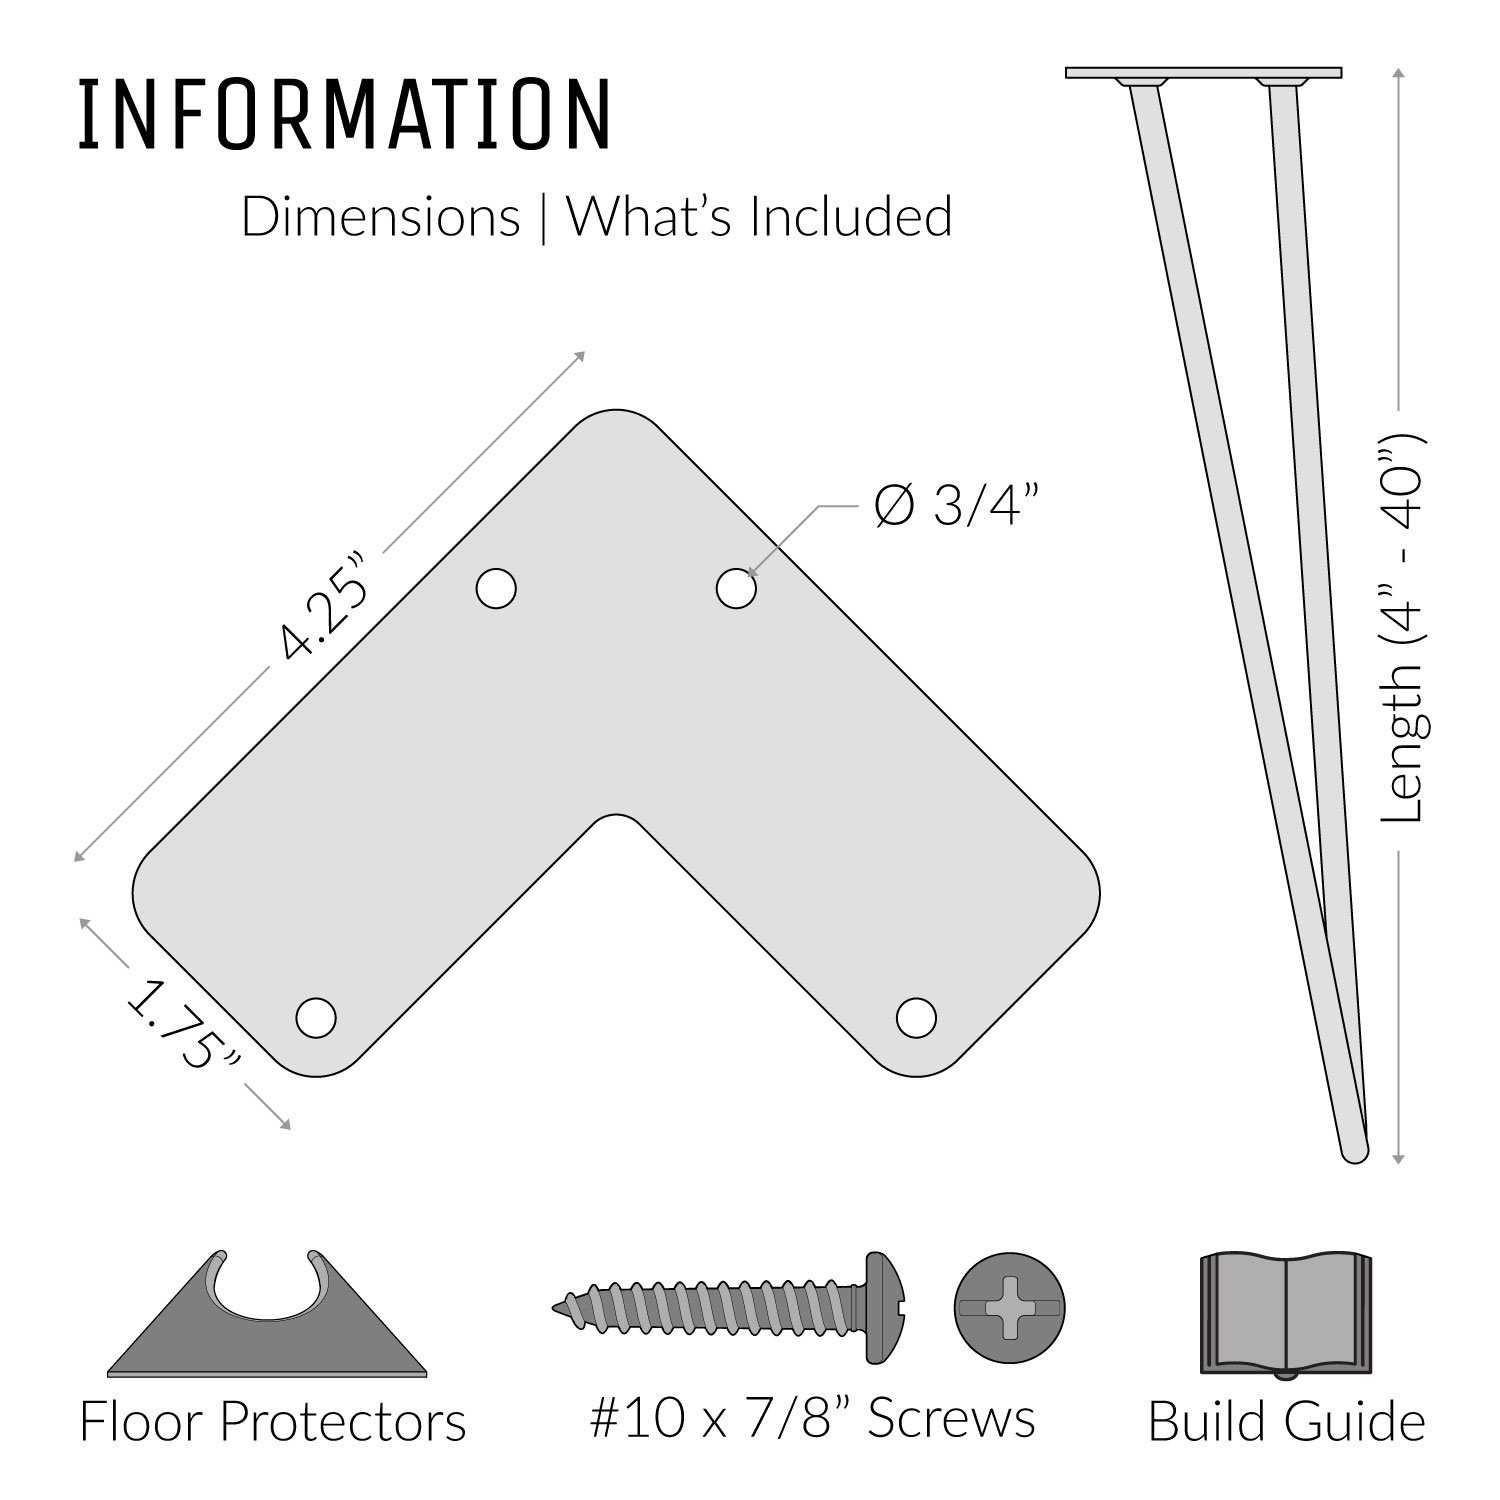 4 x Heavy Duty Hairpin Table Legs – Superior Double Weld Steel Construction With Free Screws, Build Guide & Protector Feet, Worth $10! – Mid-Century Modern Style – 16'' To 40'', All Finishes (1/2 inch) by The Hairpin Leg Co. (Image #8)